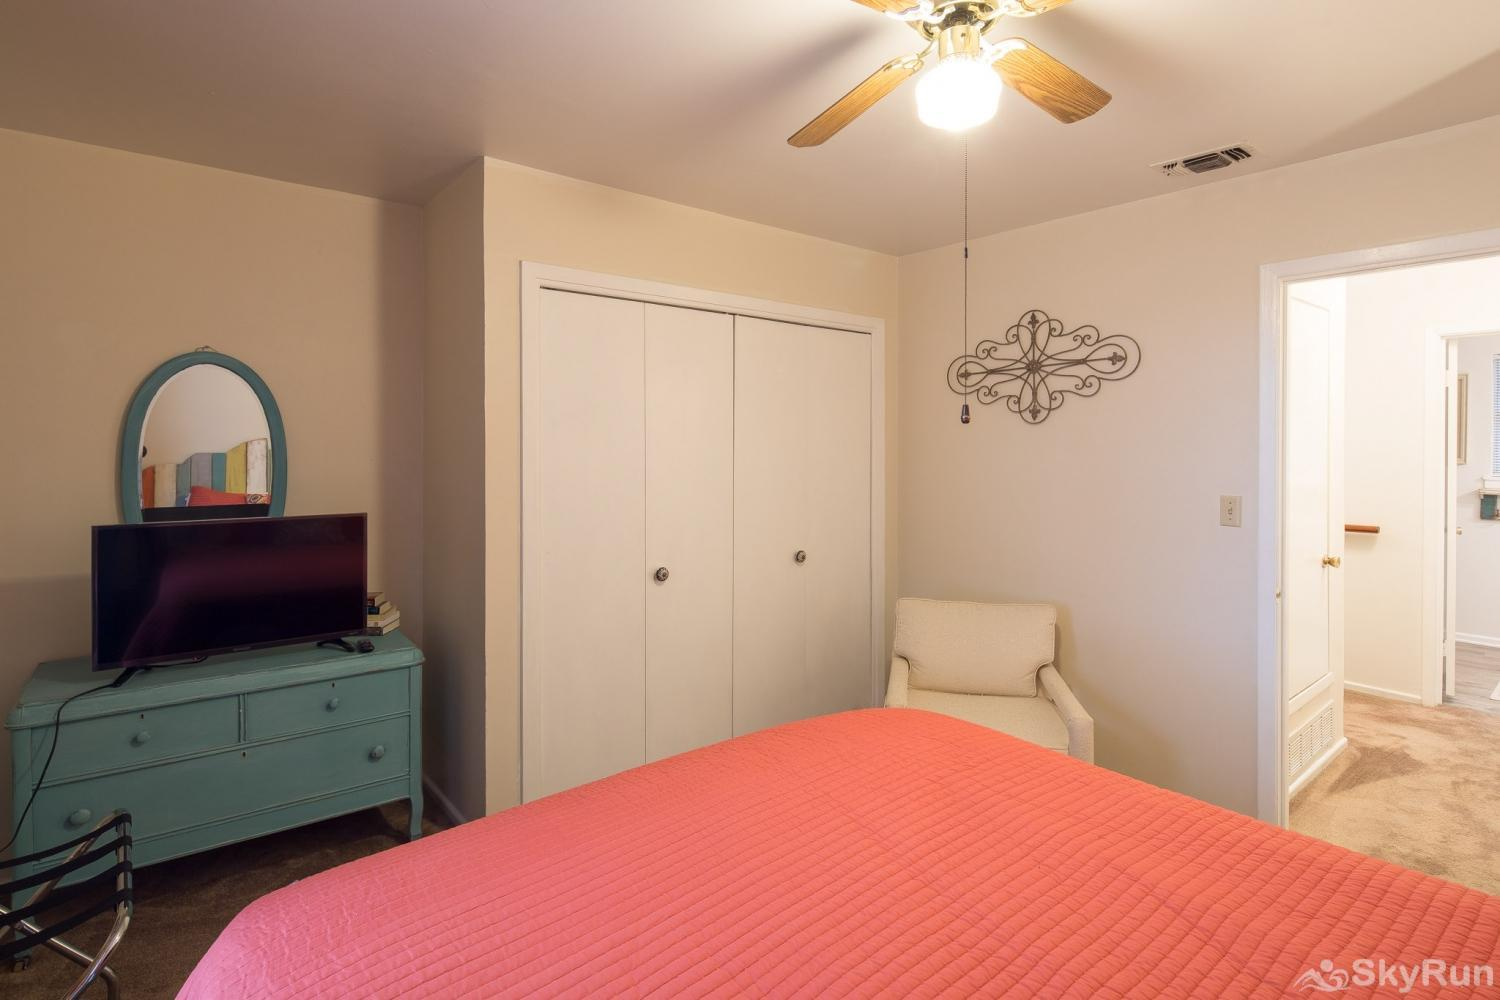 TEXAS ROSE LODGE First bedroom, cont.